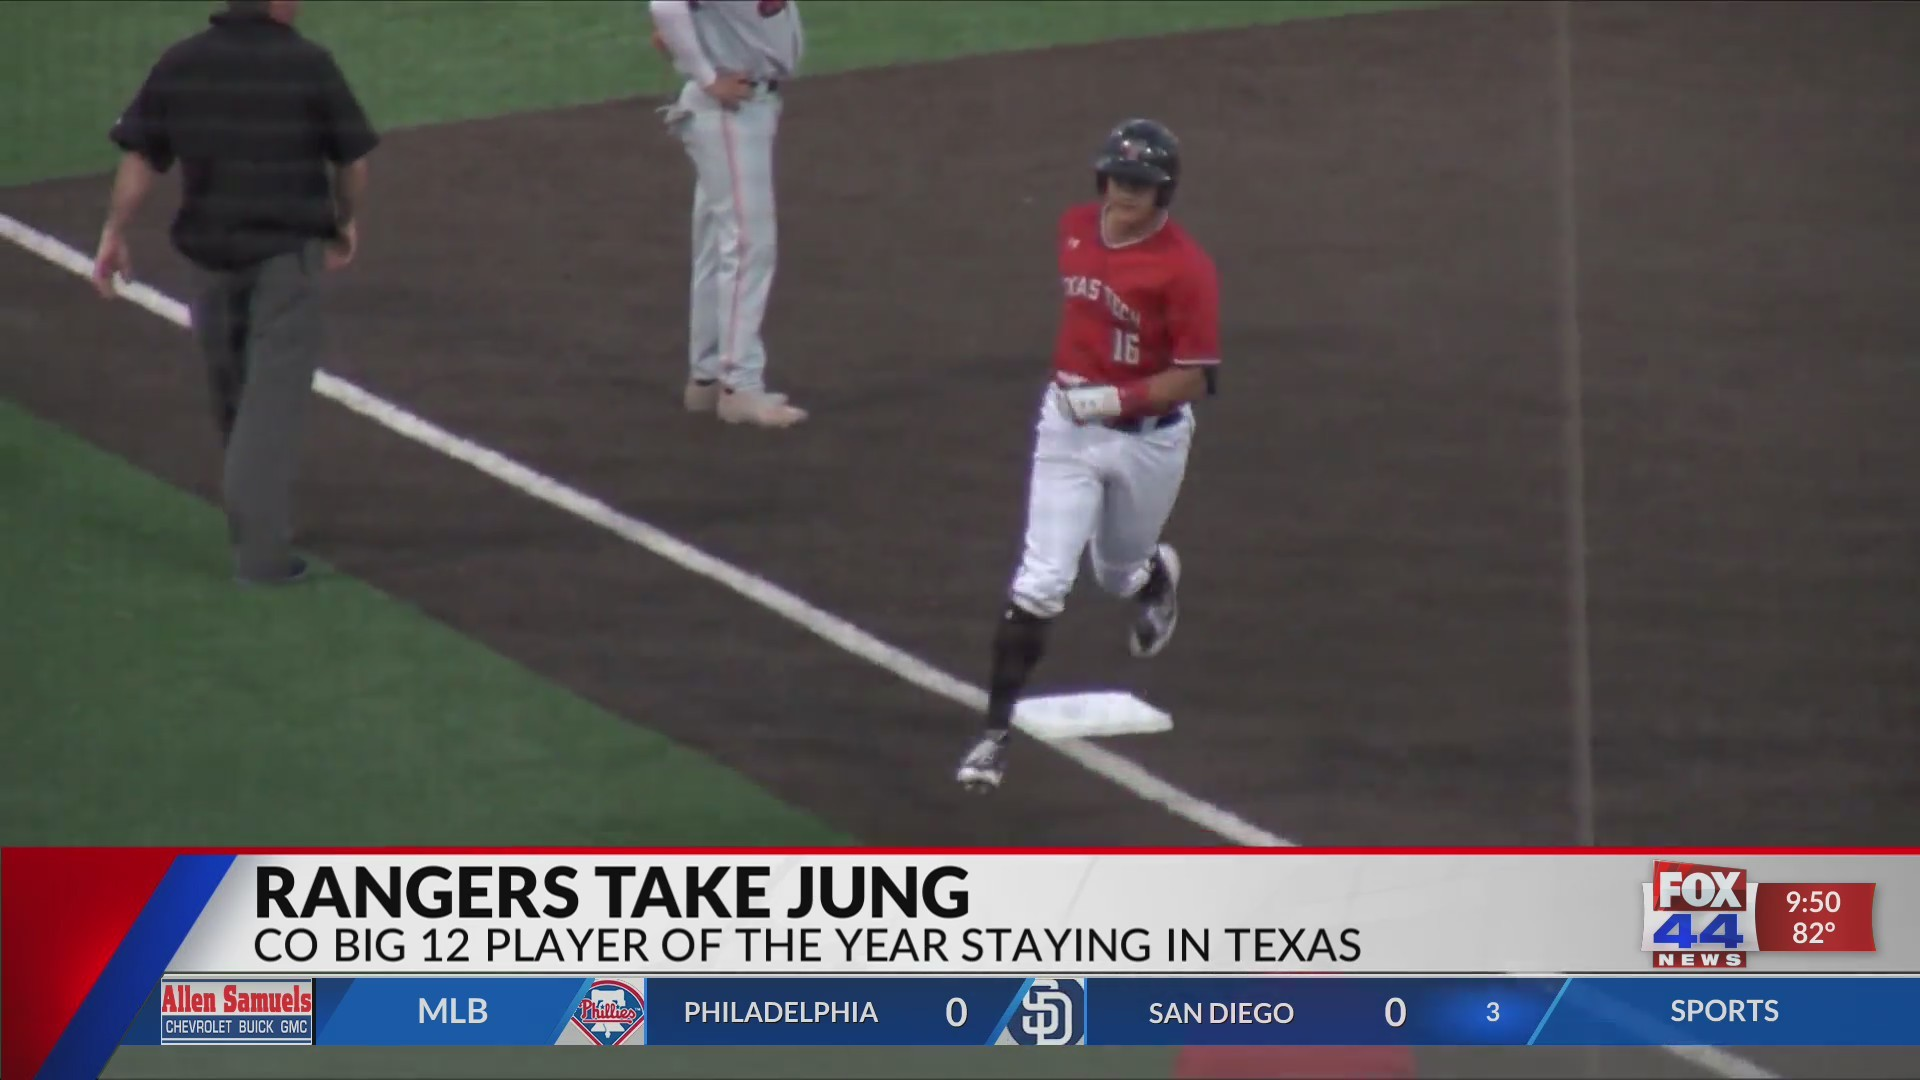 Rangers Talk Jung